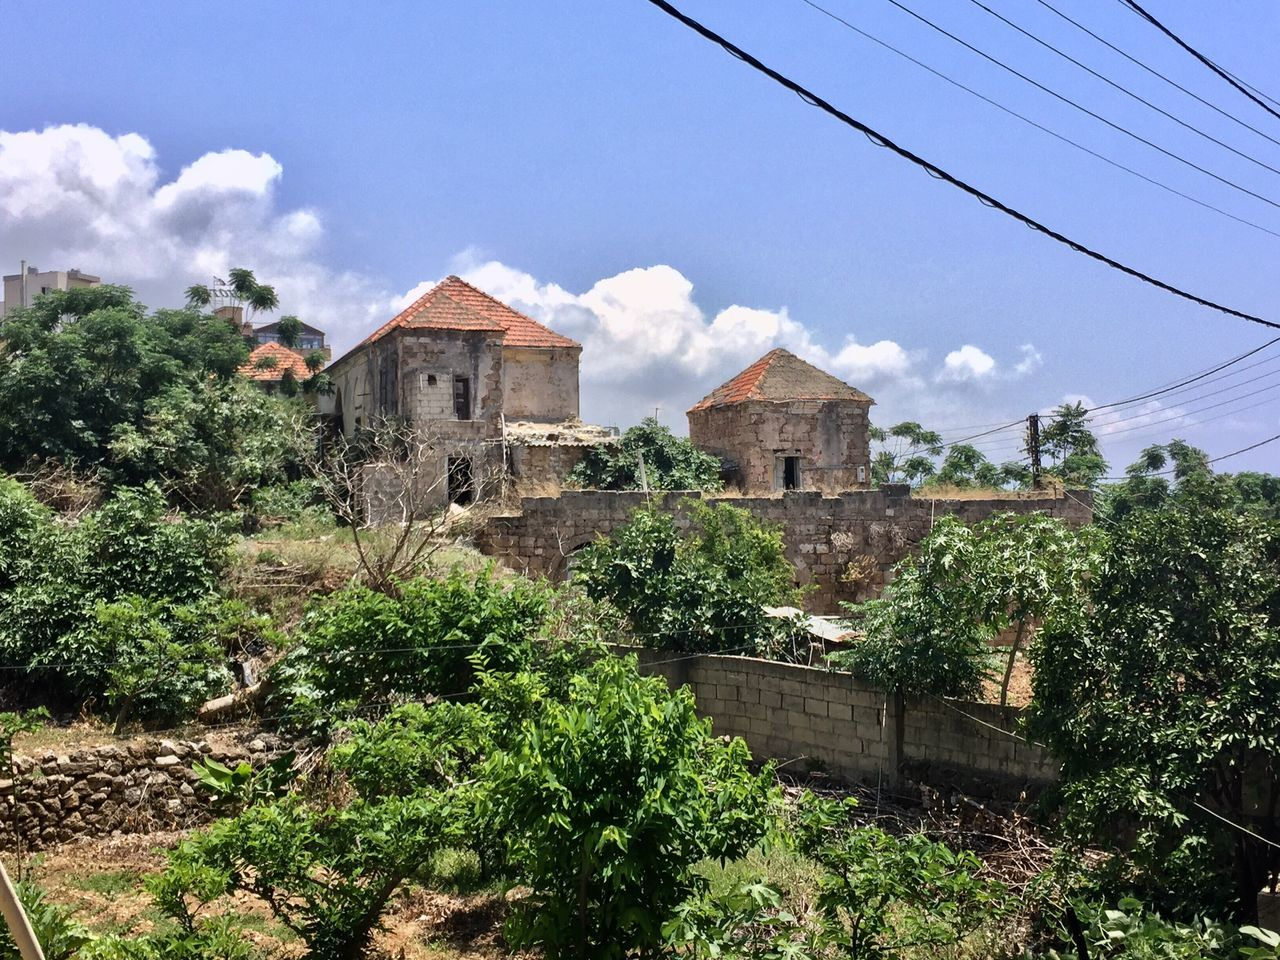 Hidden Places Urban Decay Old Houses Summer Day Outdoors Power Lines Byblos Lebanon